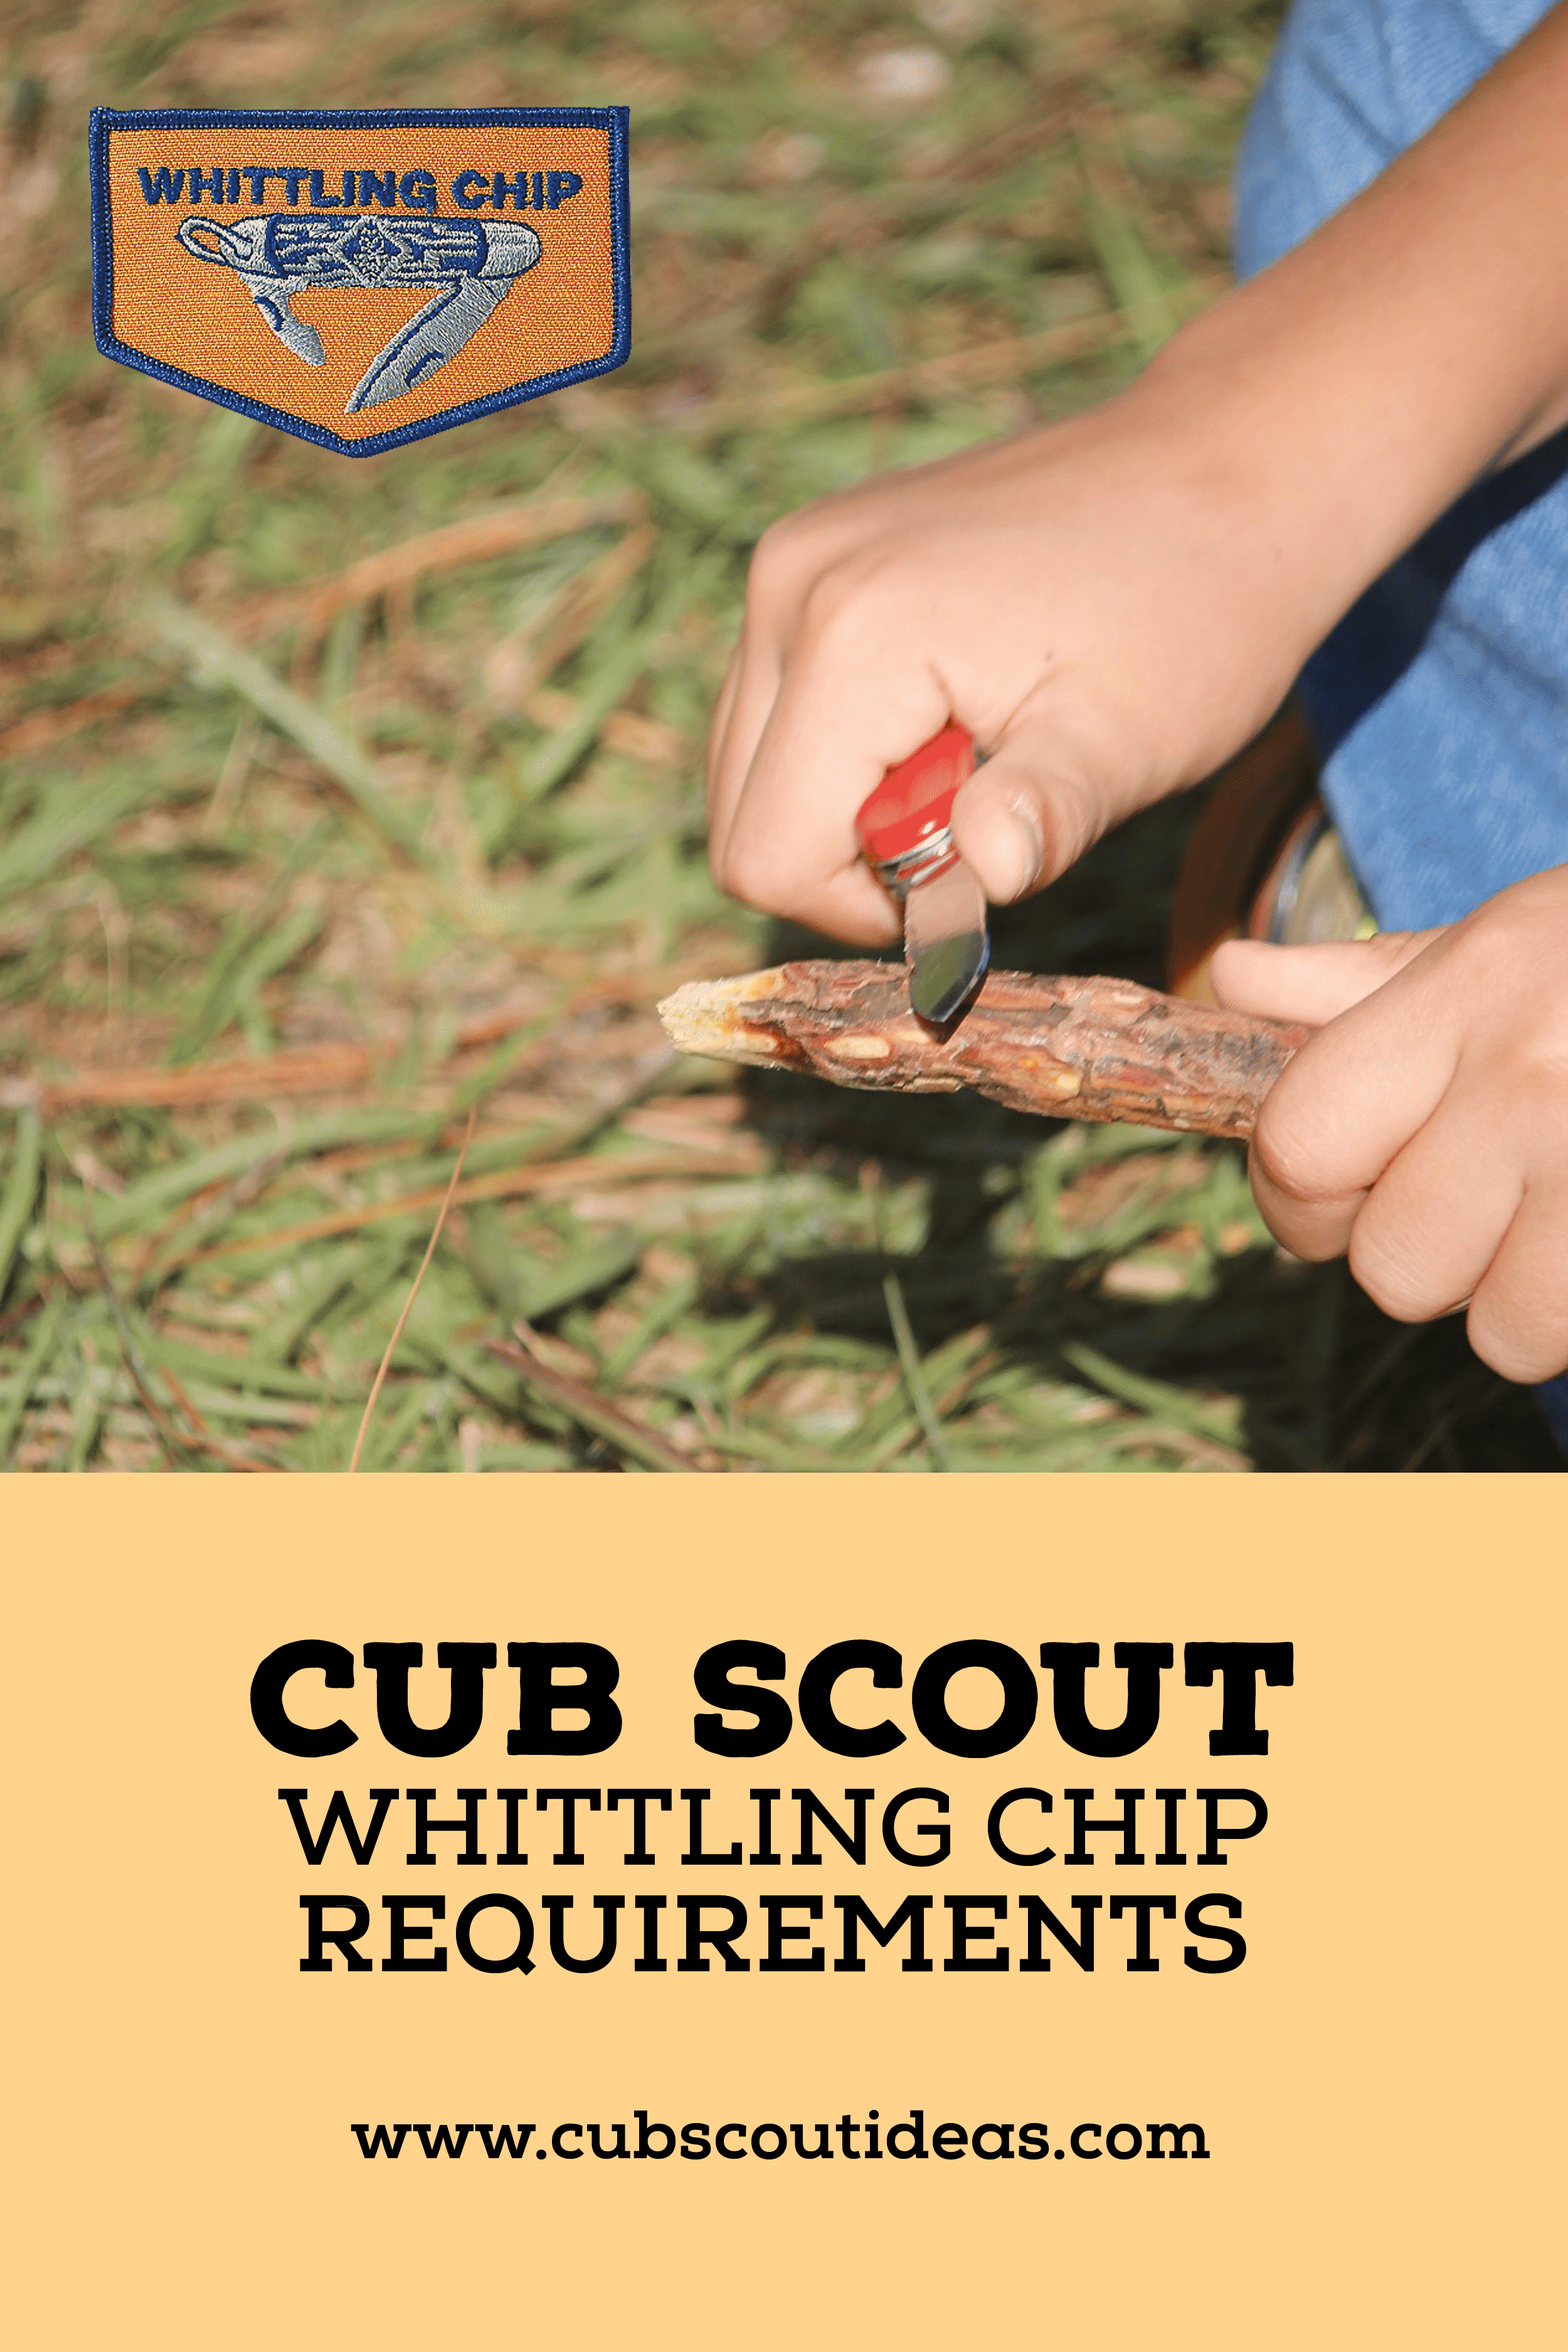 What are the Cub Scout Whittling Chip Requirements?